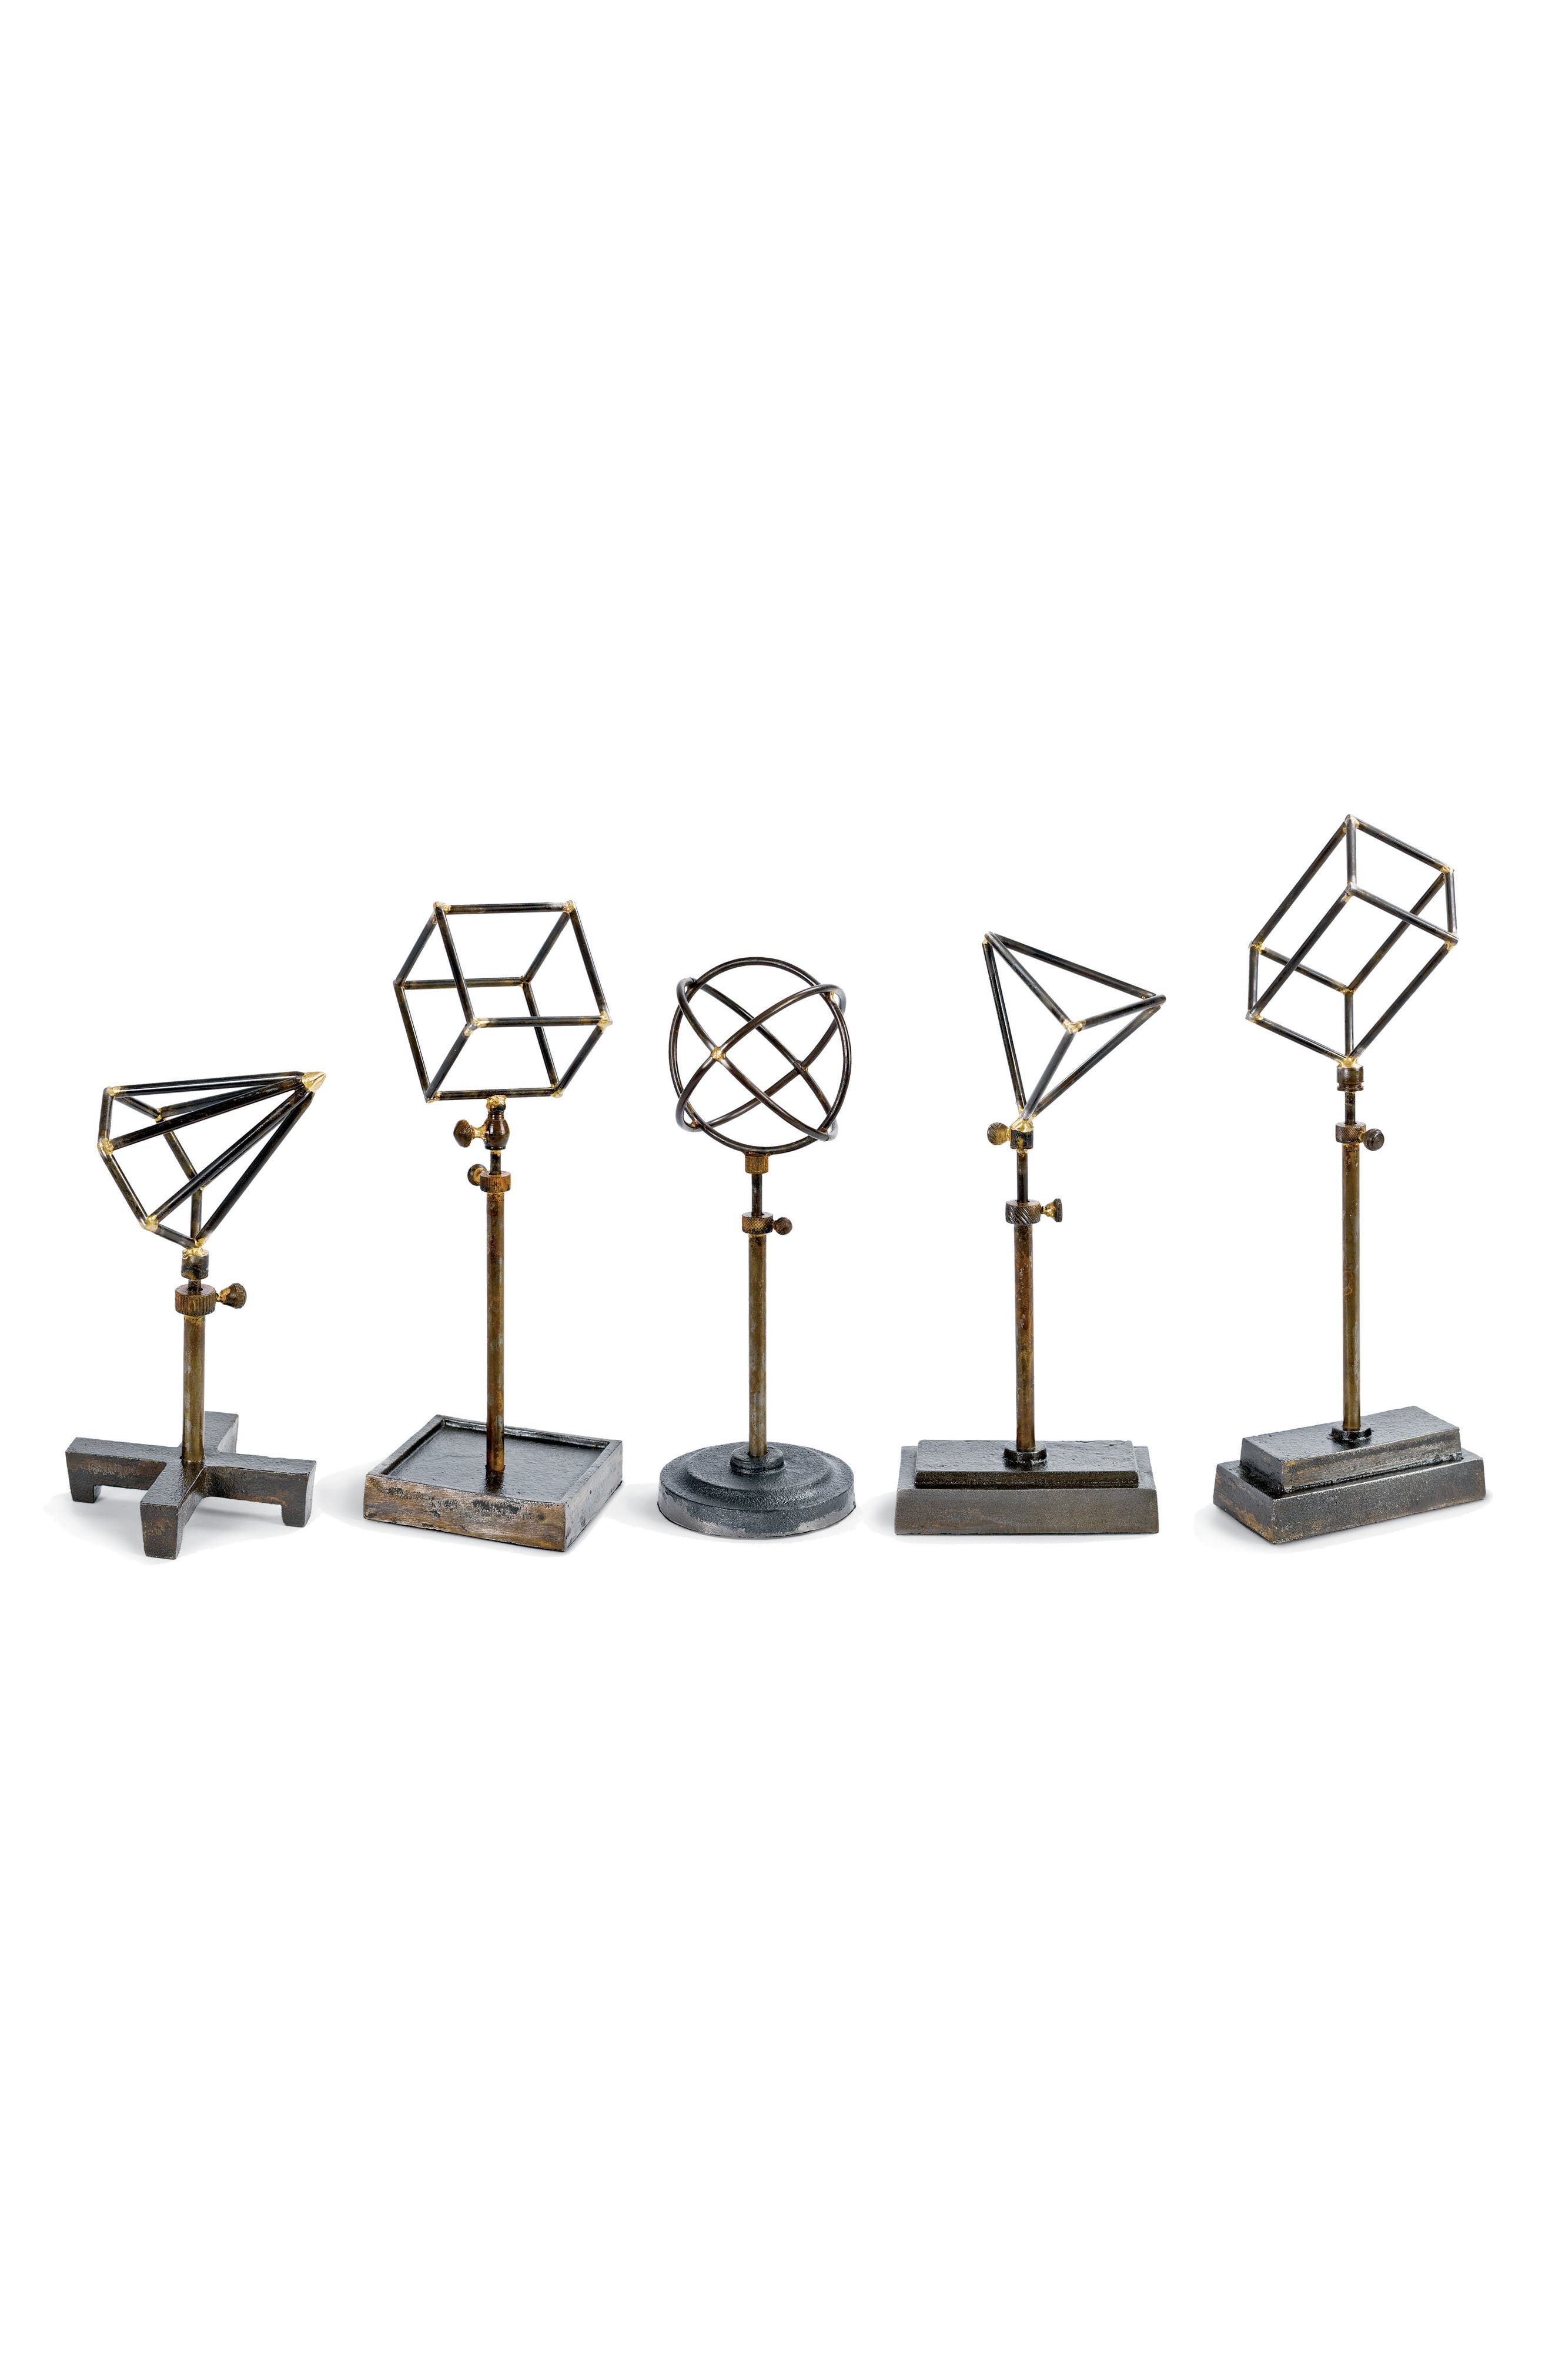 Set of 5 Geometric Sculptures,                             Main thumbnail 1, color,                             Brass